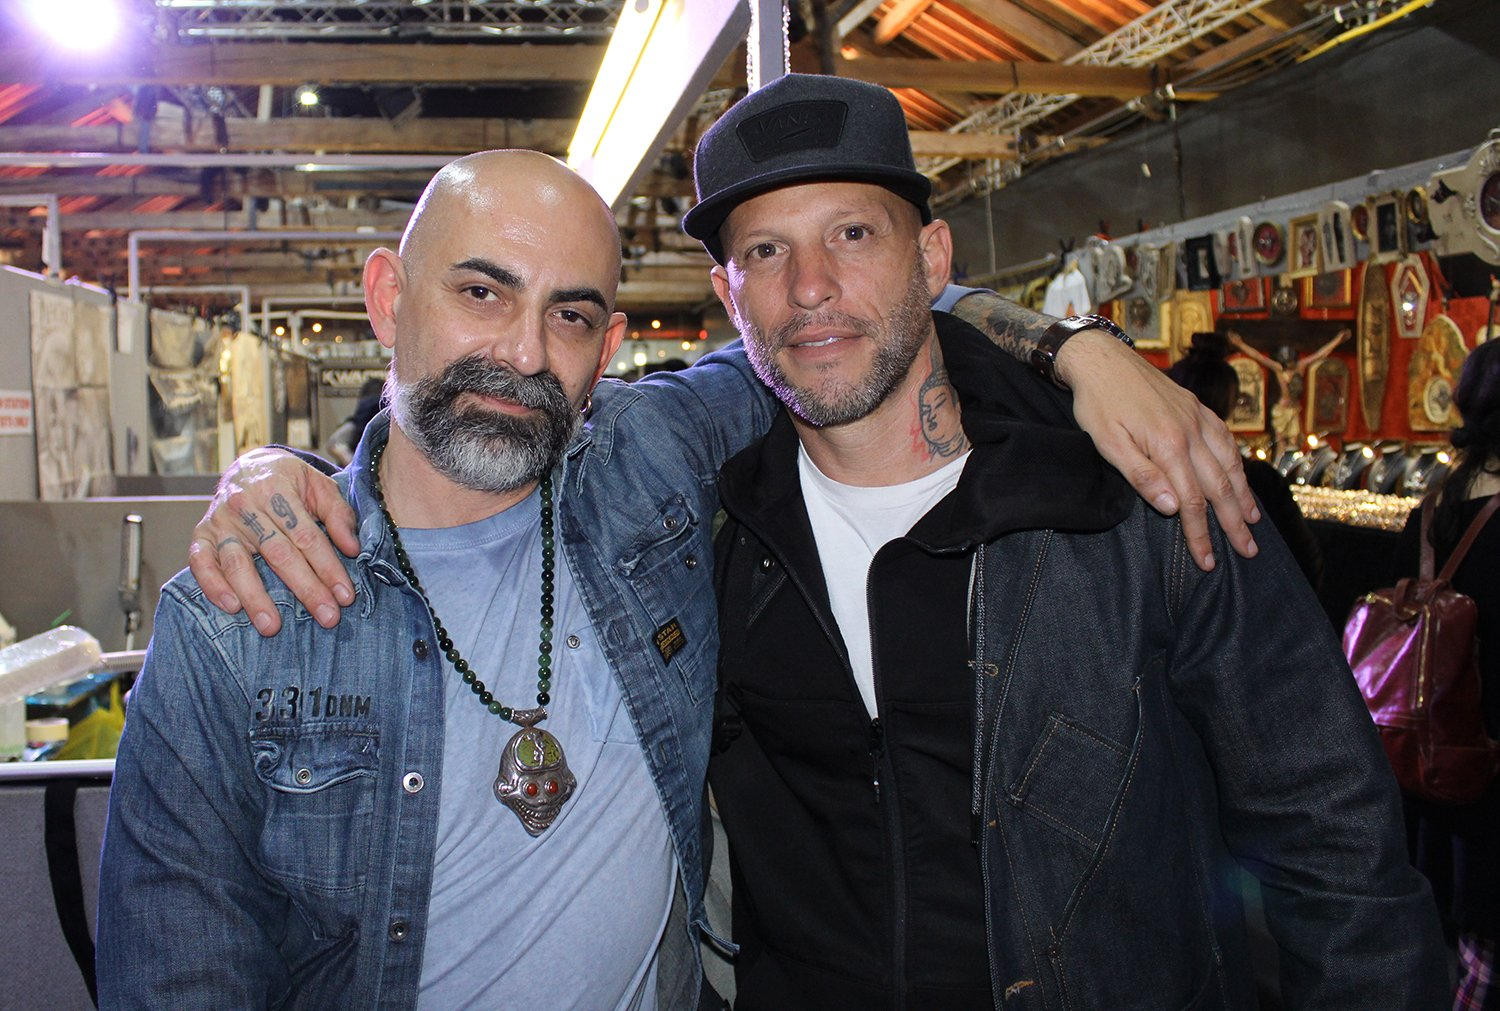 Miki Vialetto and Ami James at the london tattoo convention